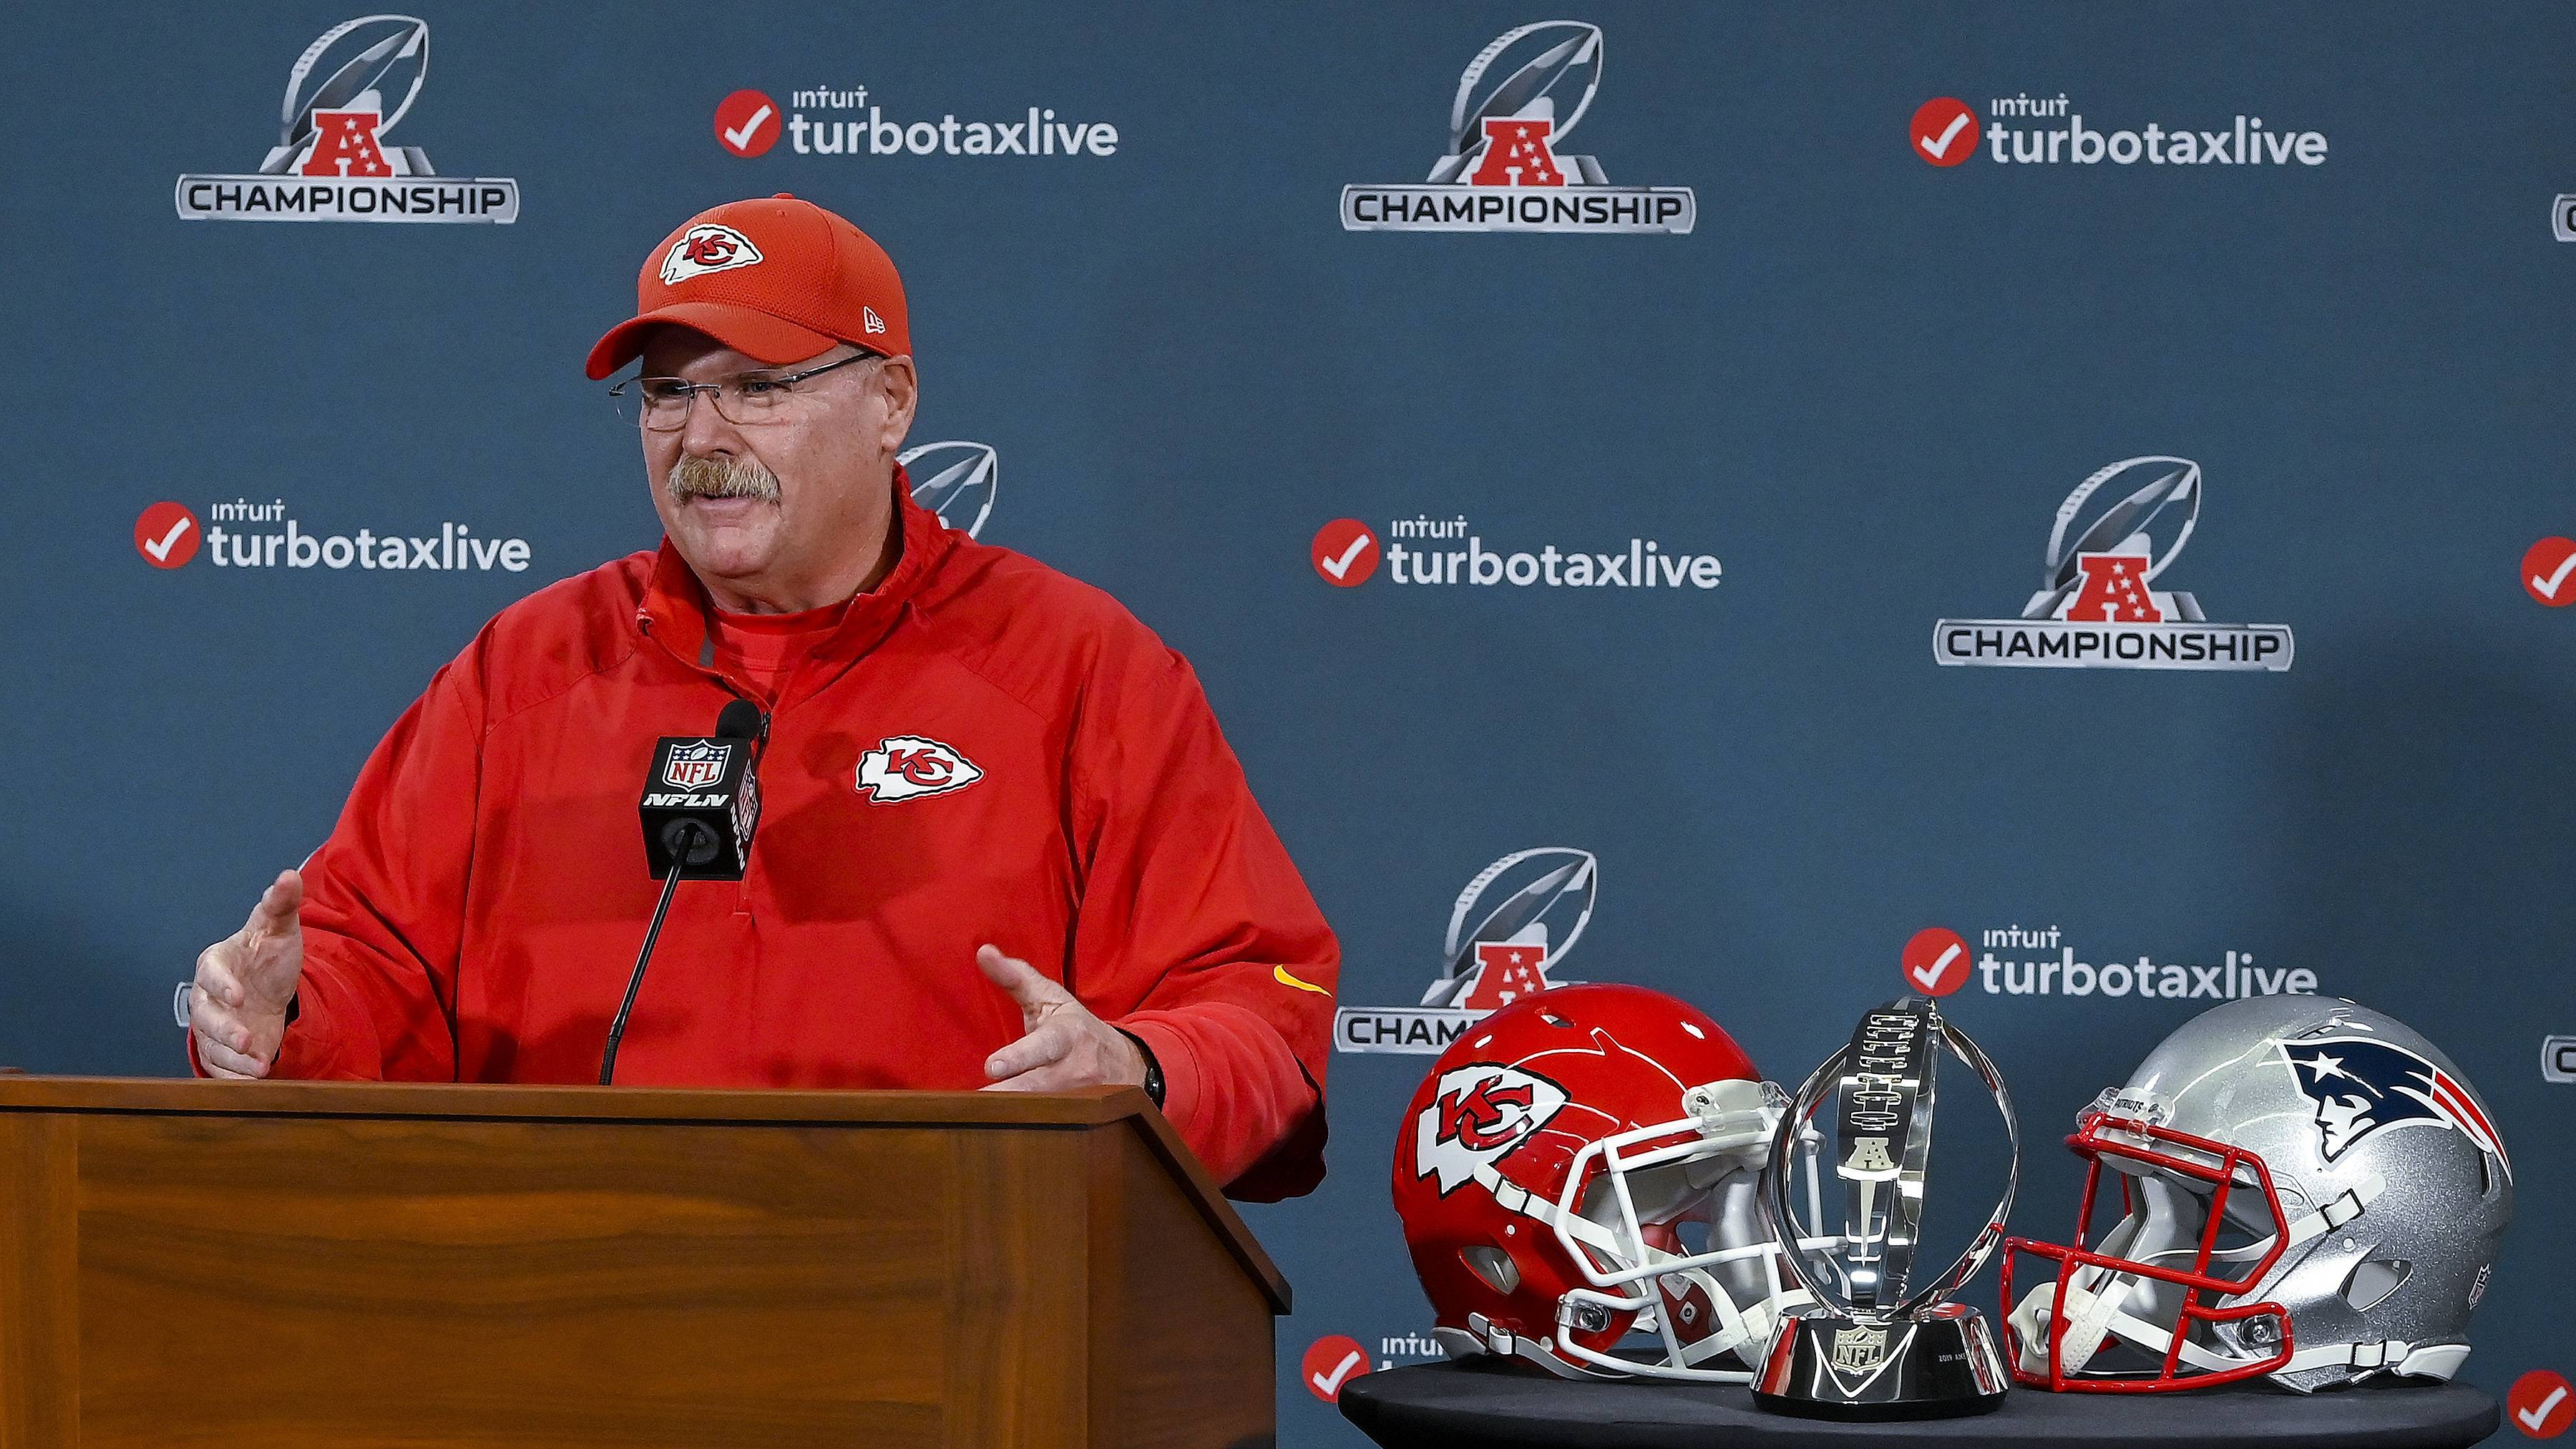 Kansas City Chiefs coach Andy Reid speaks Wednesday during a news conference in Kansas City, Mo. The Chiefs are scheduled to play the New England Patriots for the NFL football AFC championship Sunday.